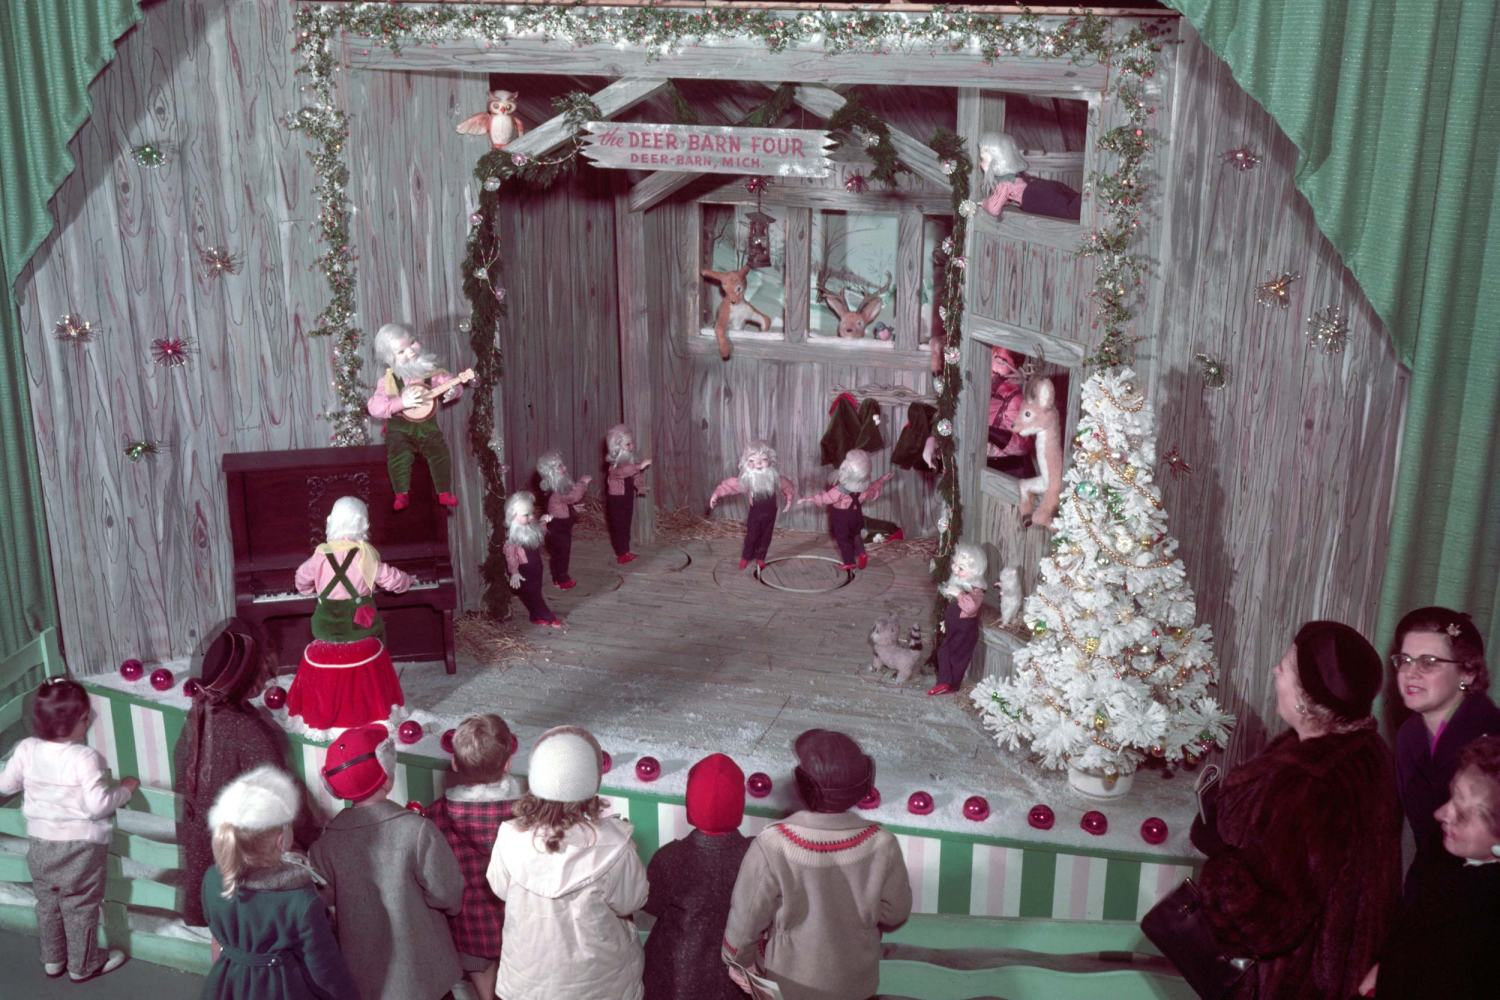 1957 Ford Rotunda Christmas Deer-Barn Four